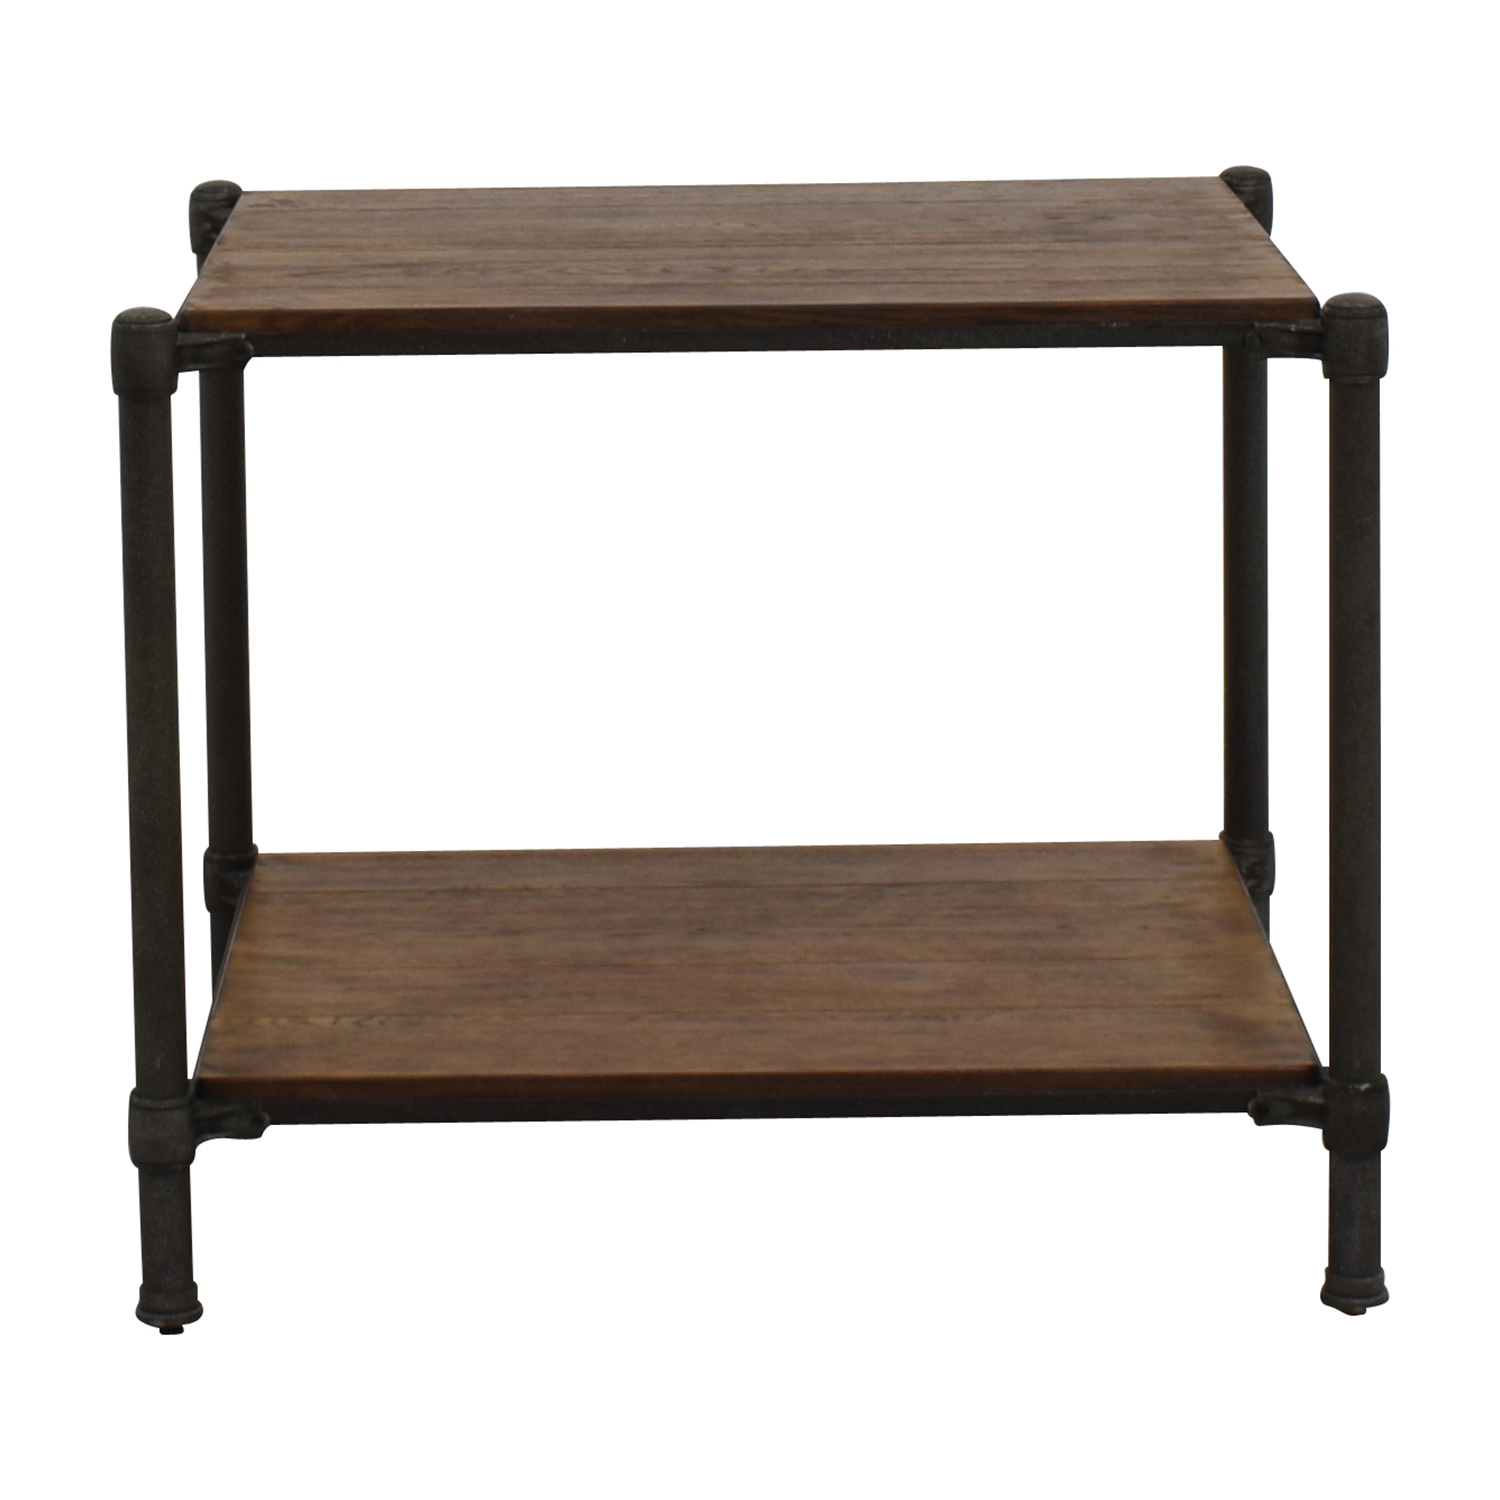 Ethan Allen Ethan Allen Metal and Wood End Table on sale